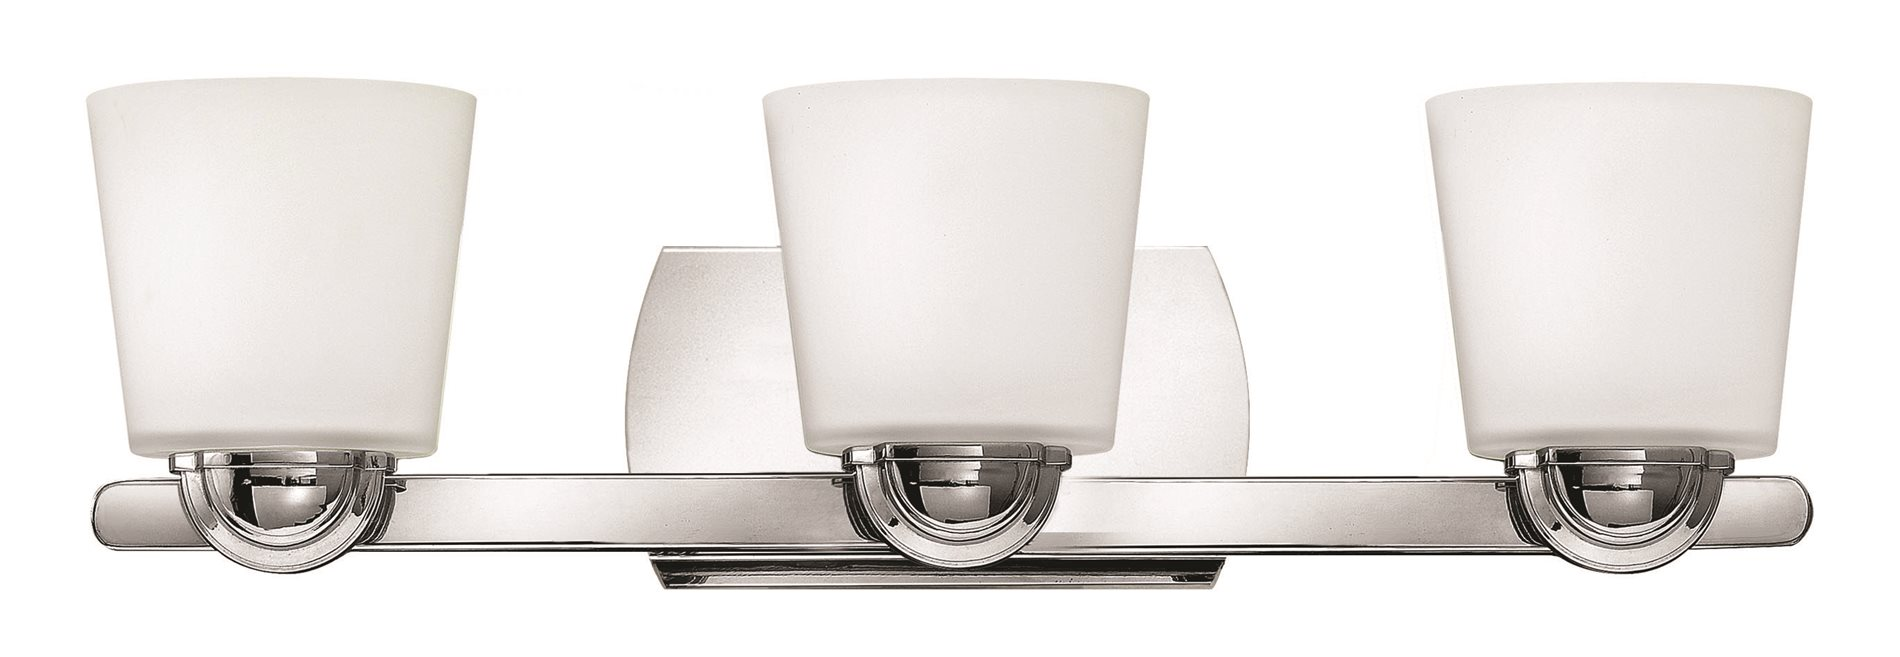 Bathroom Vanity Lights Clearance : Hinkley Lighting 55213CM Kylie Transitional Bathroom / Vanity Light HK-55213CM